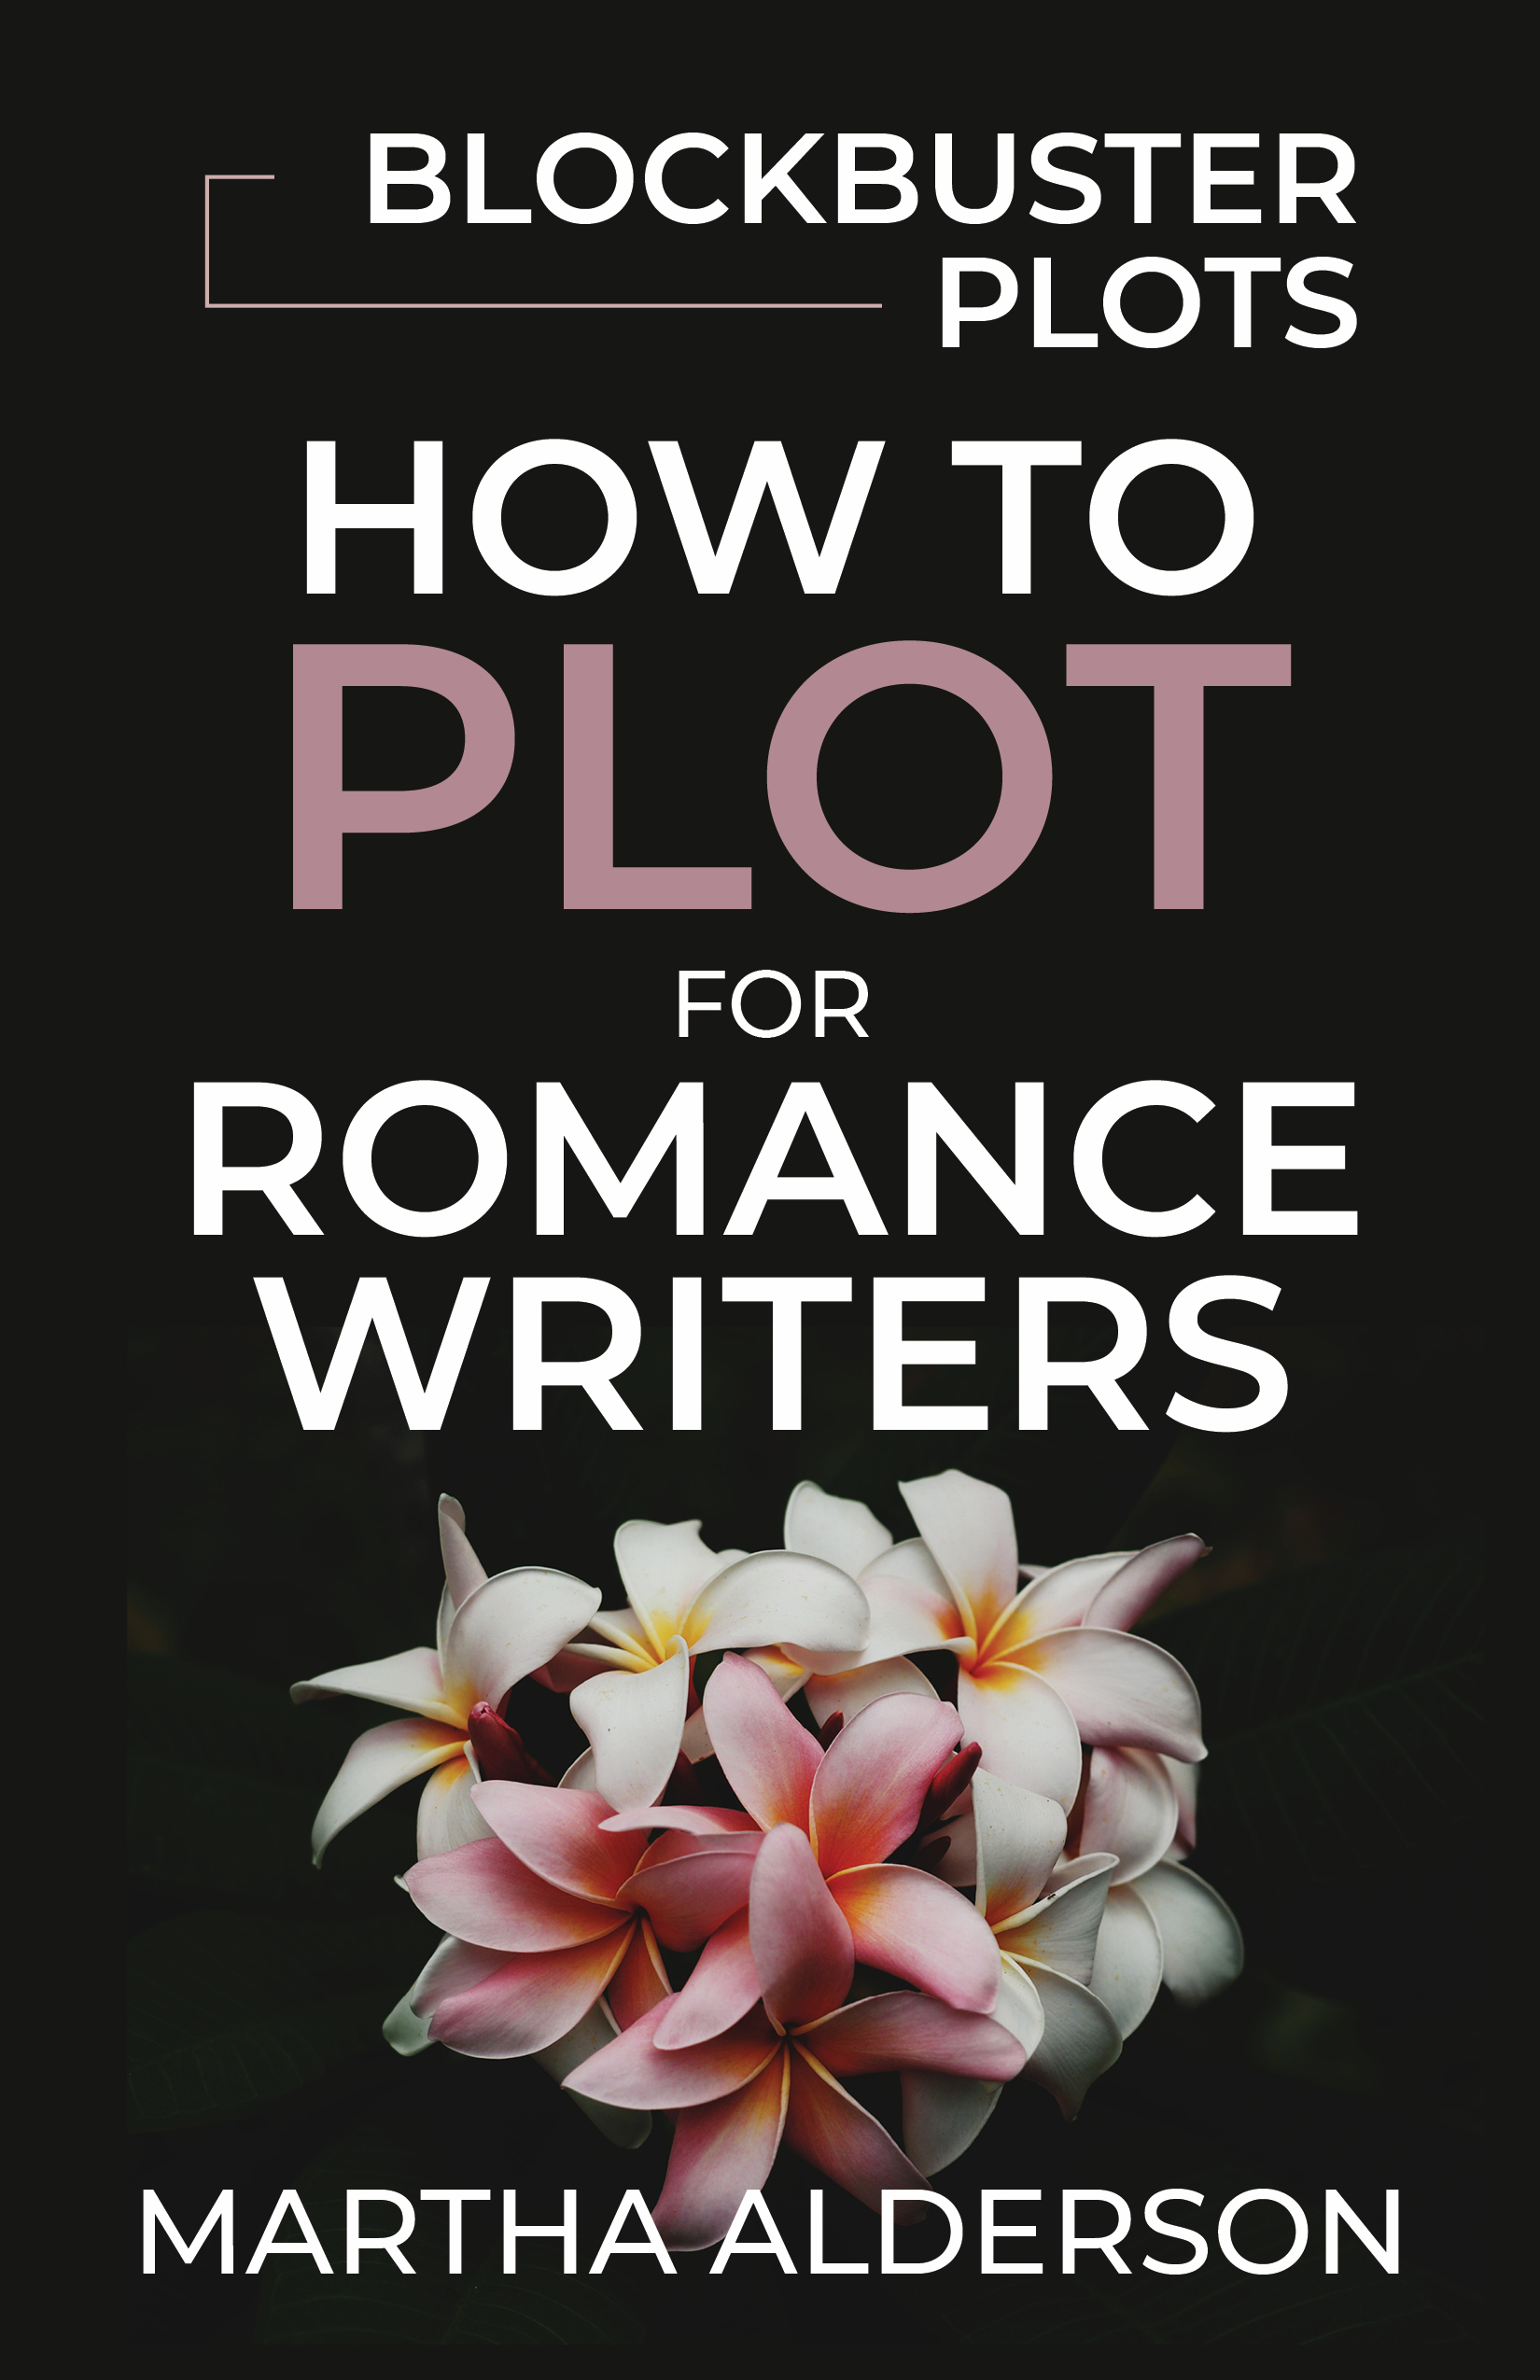 Blockbuster Plots How to Plot for Romance